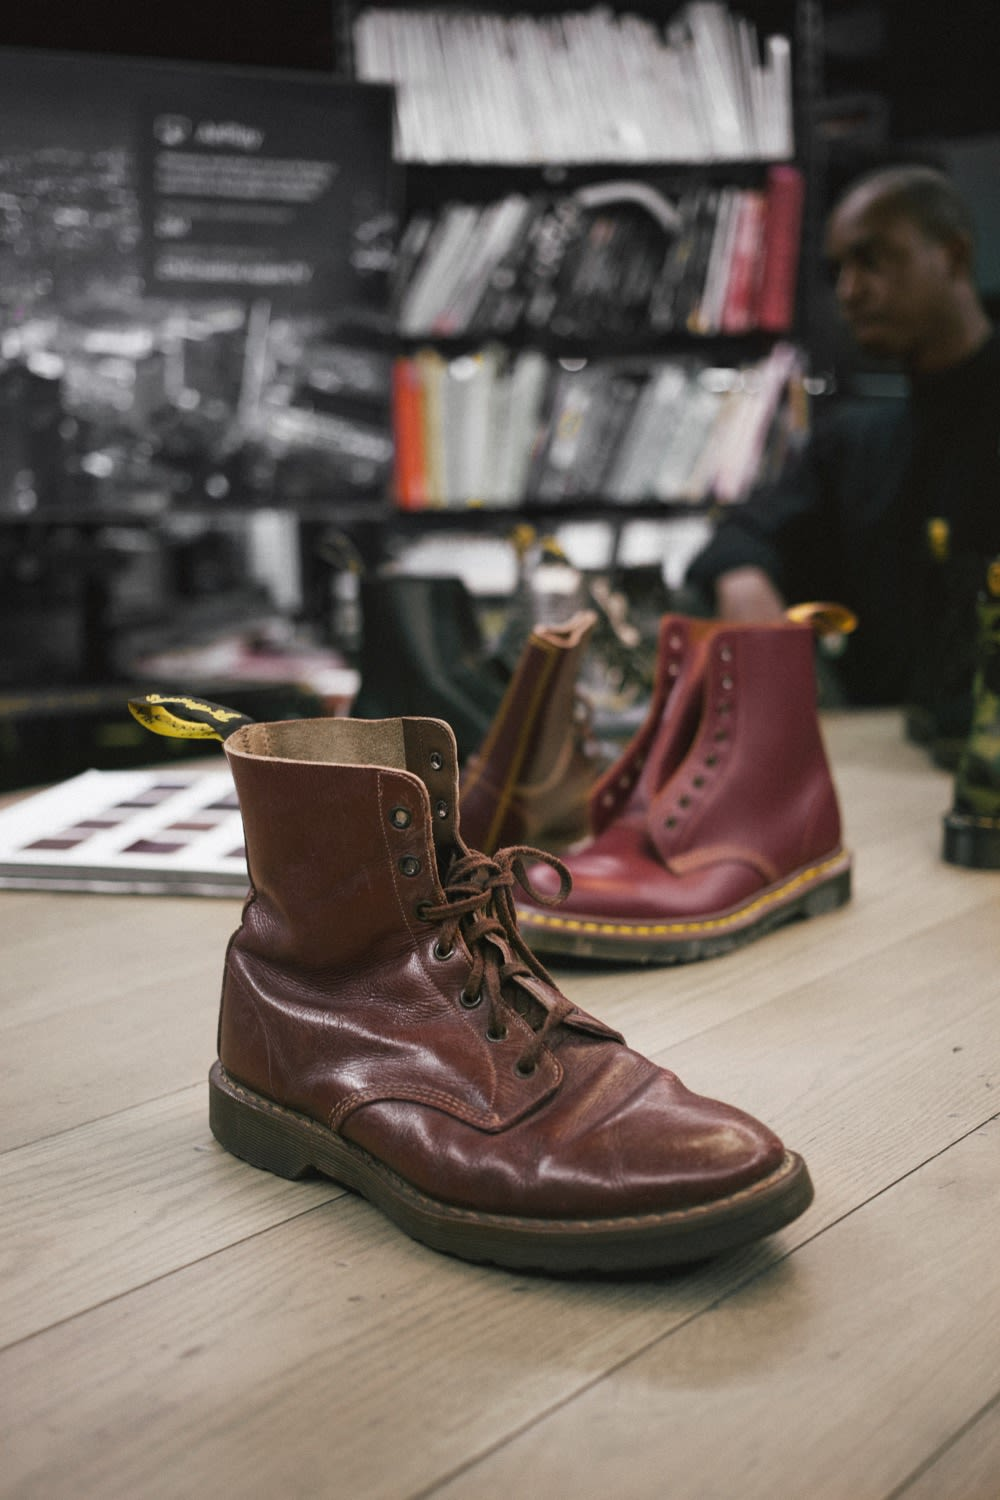 An original Dr. Martens 1460 boot.